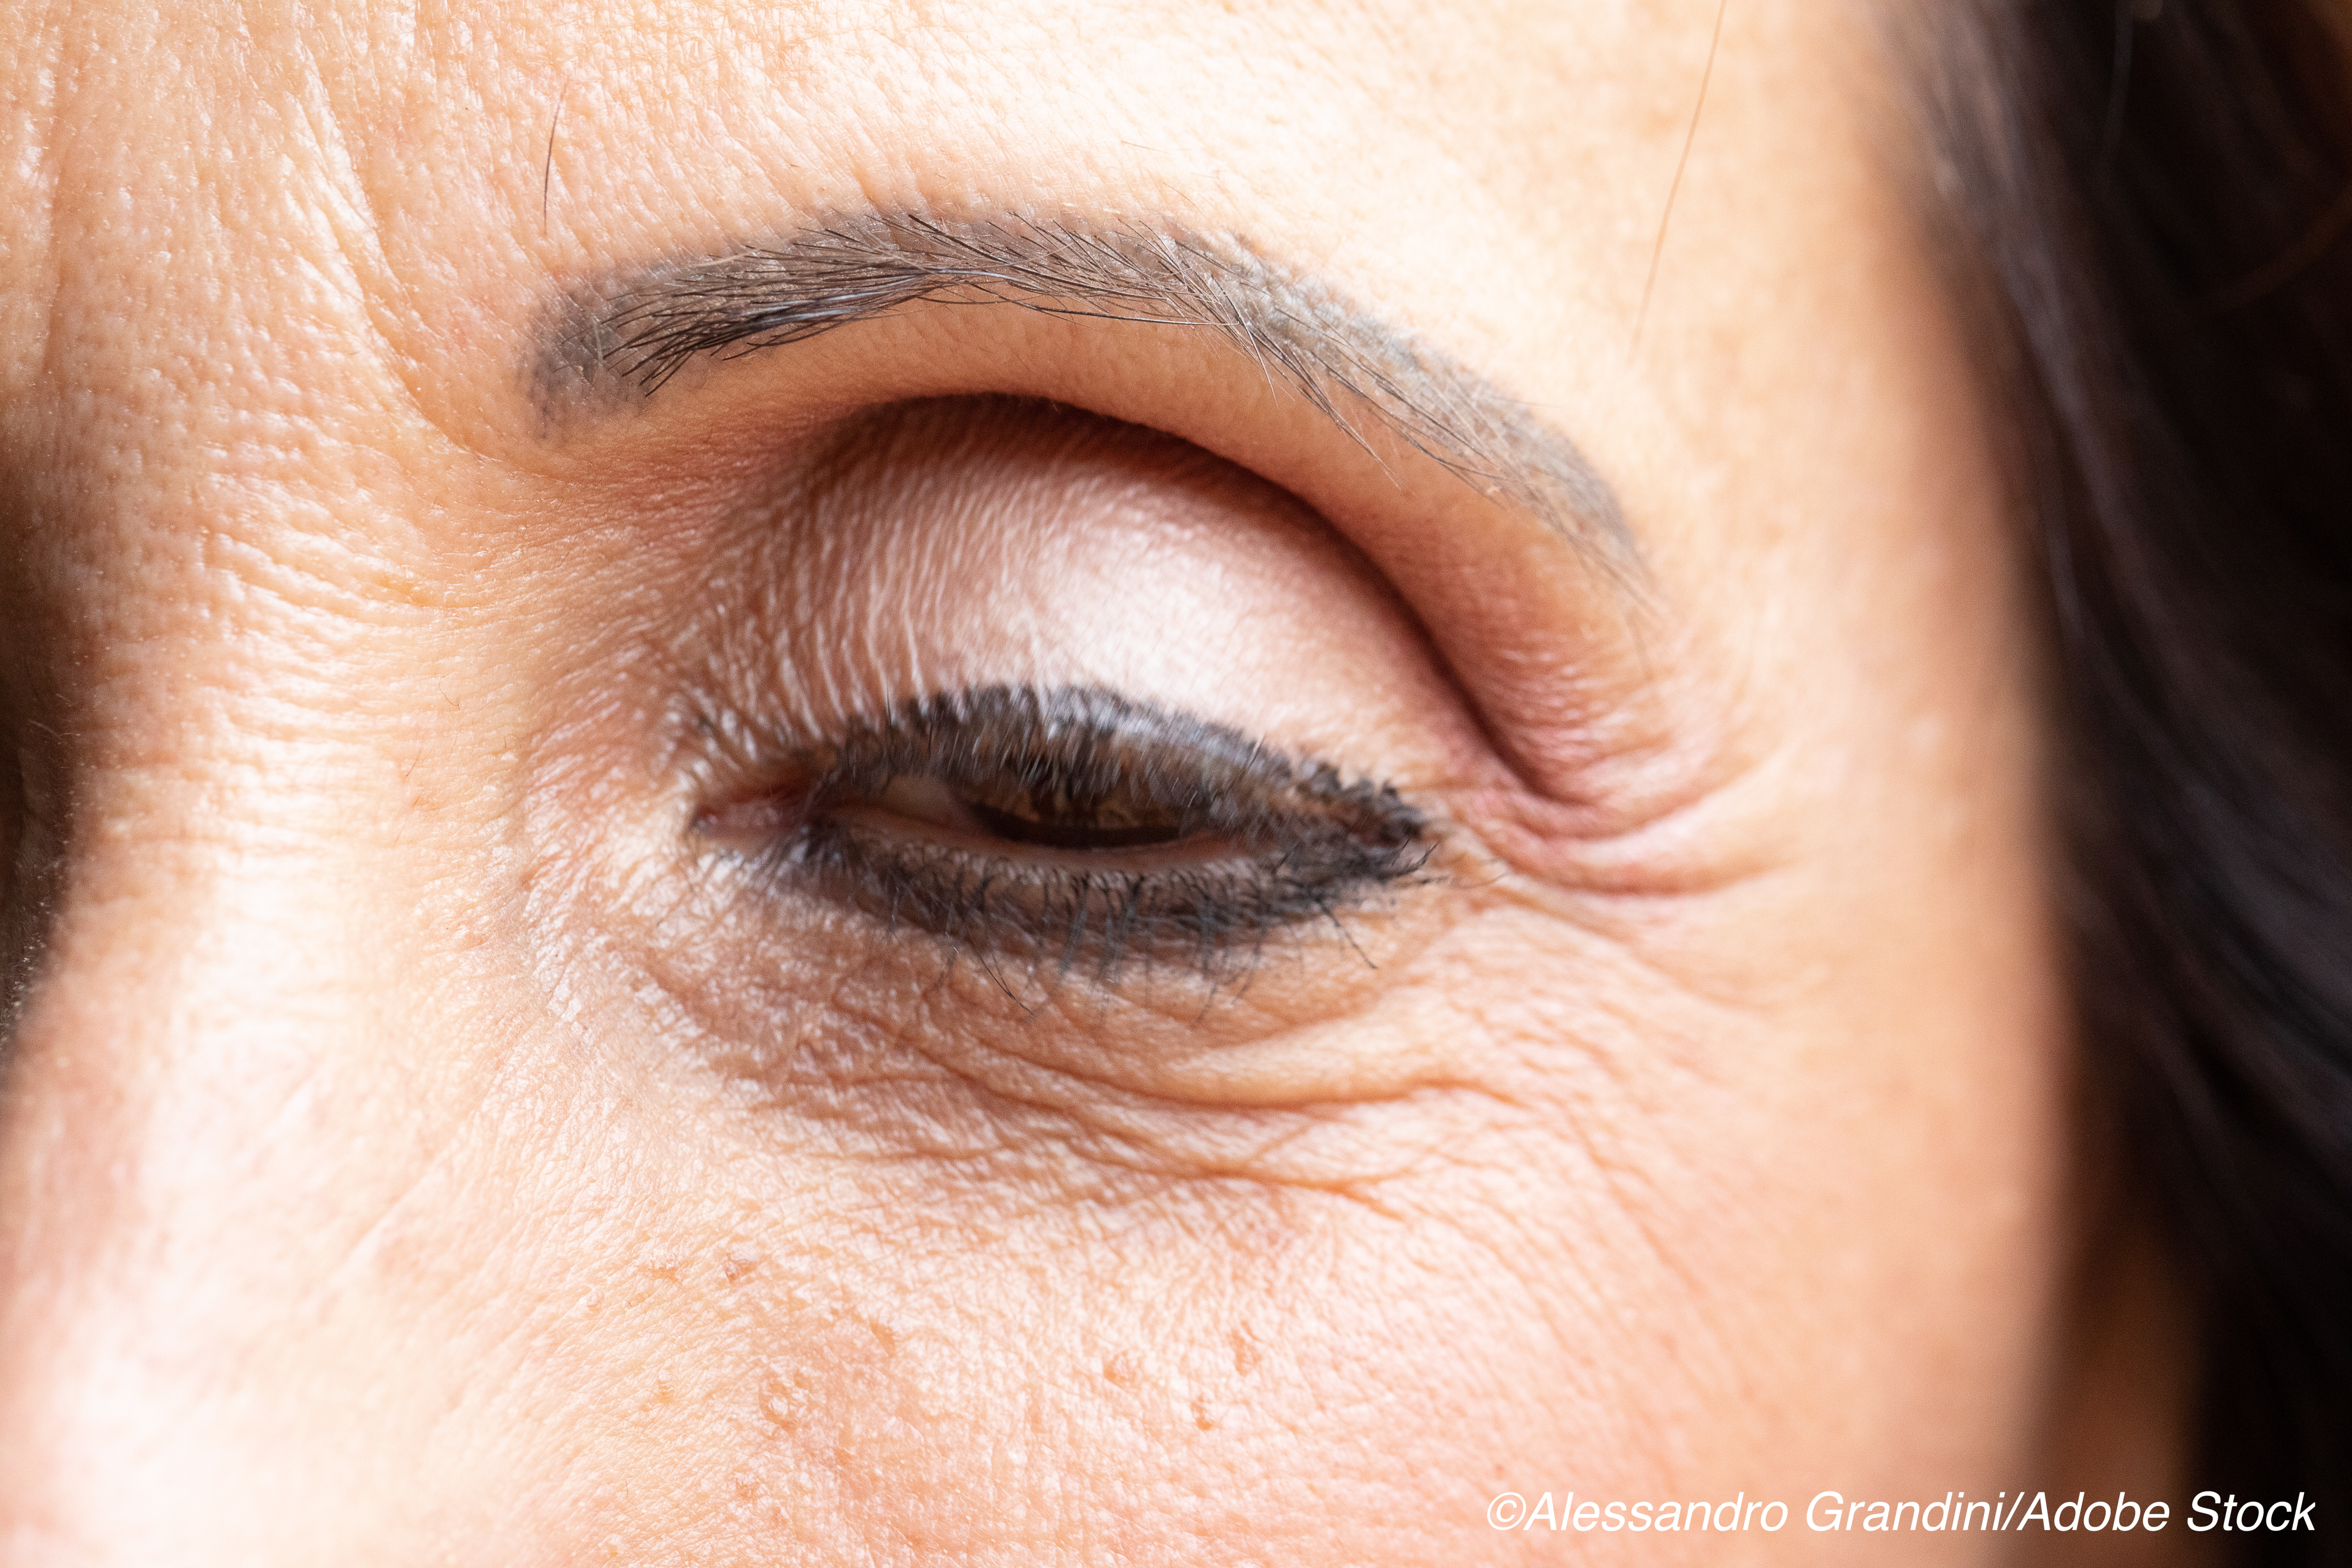 Study Finds Medical Therapy Effective for Drooping Eyelids